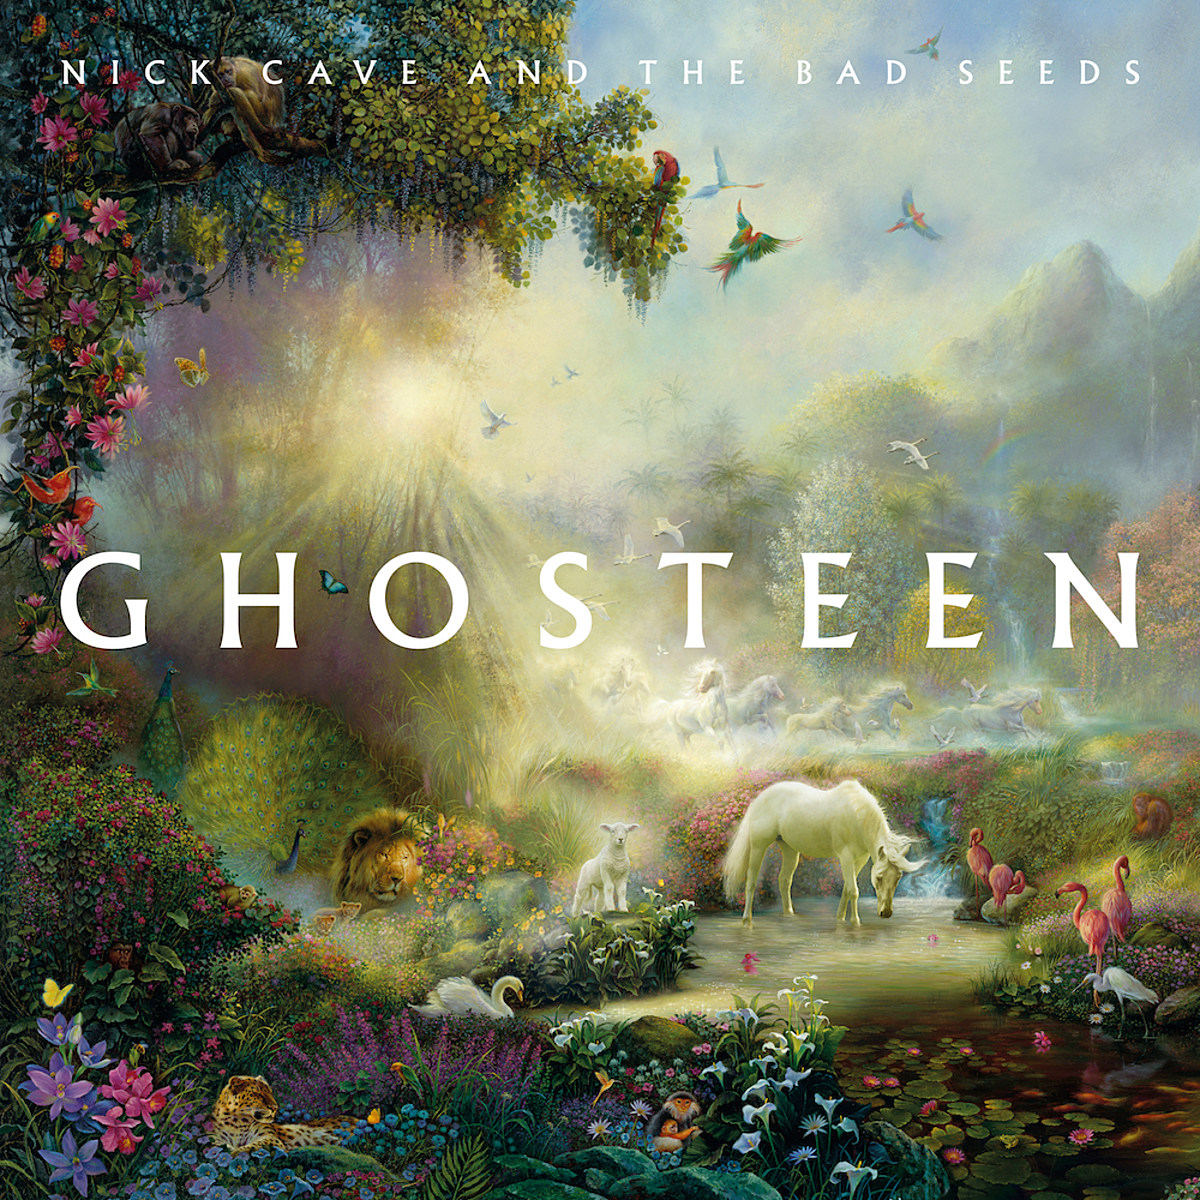 review: Nick Cave's 'Ghosteen' finds beauty and hope after darkness